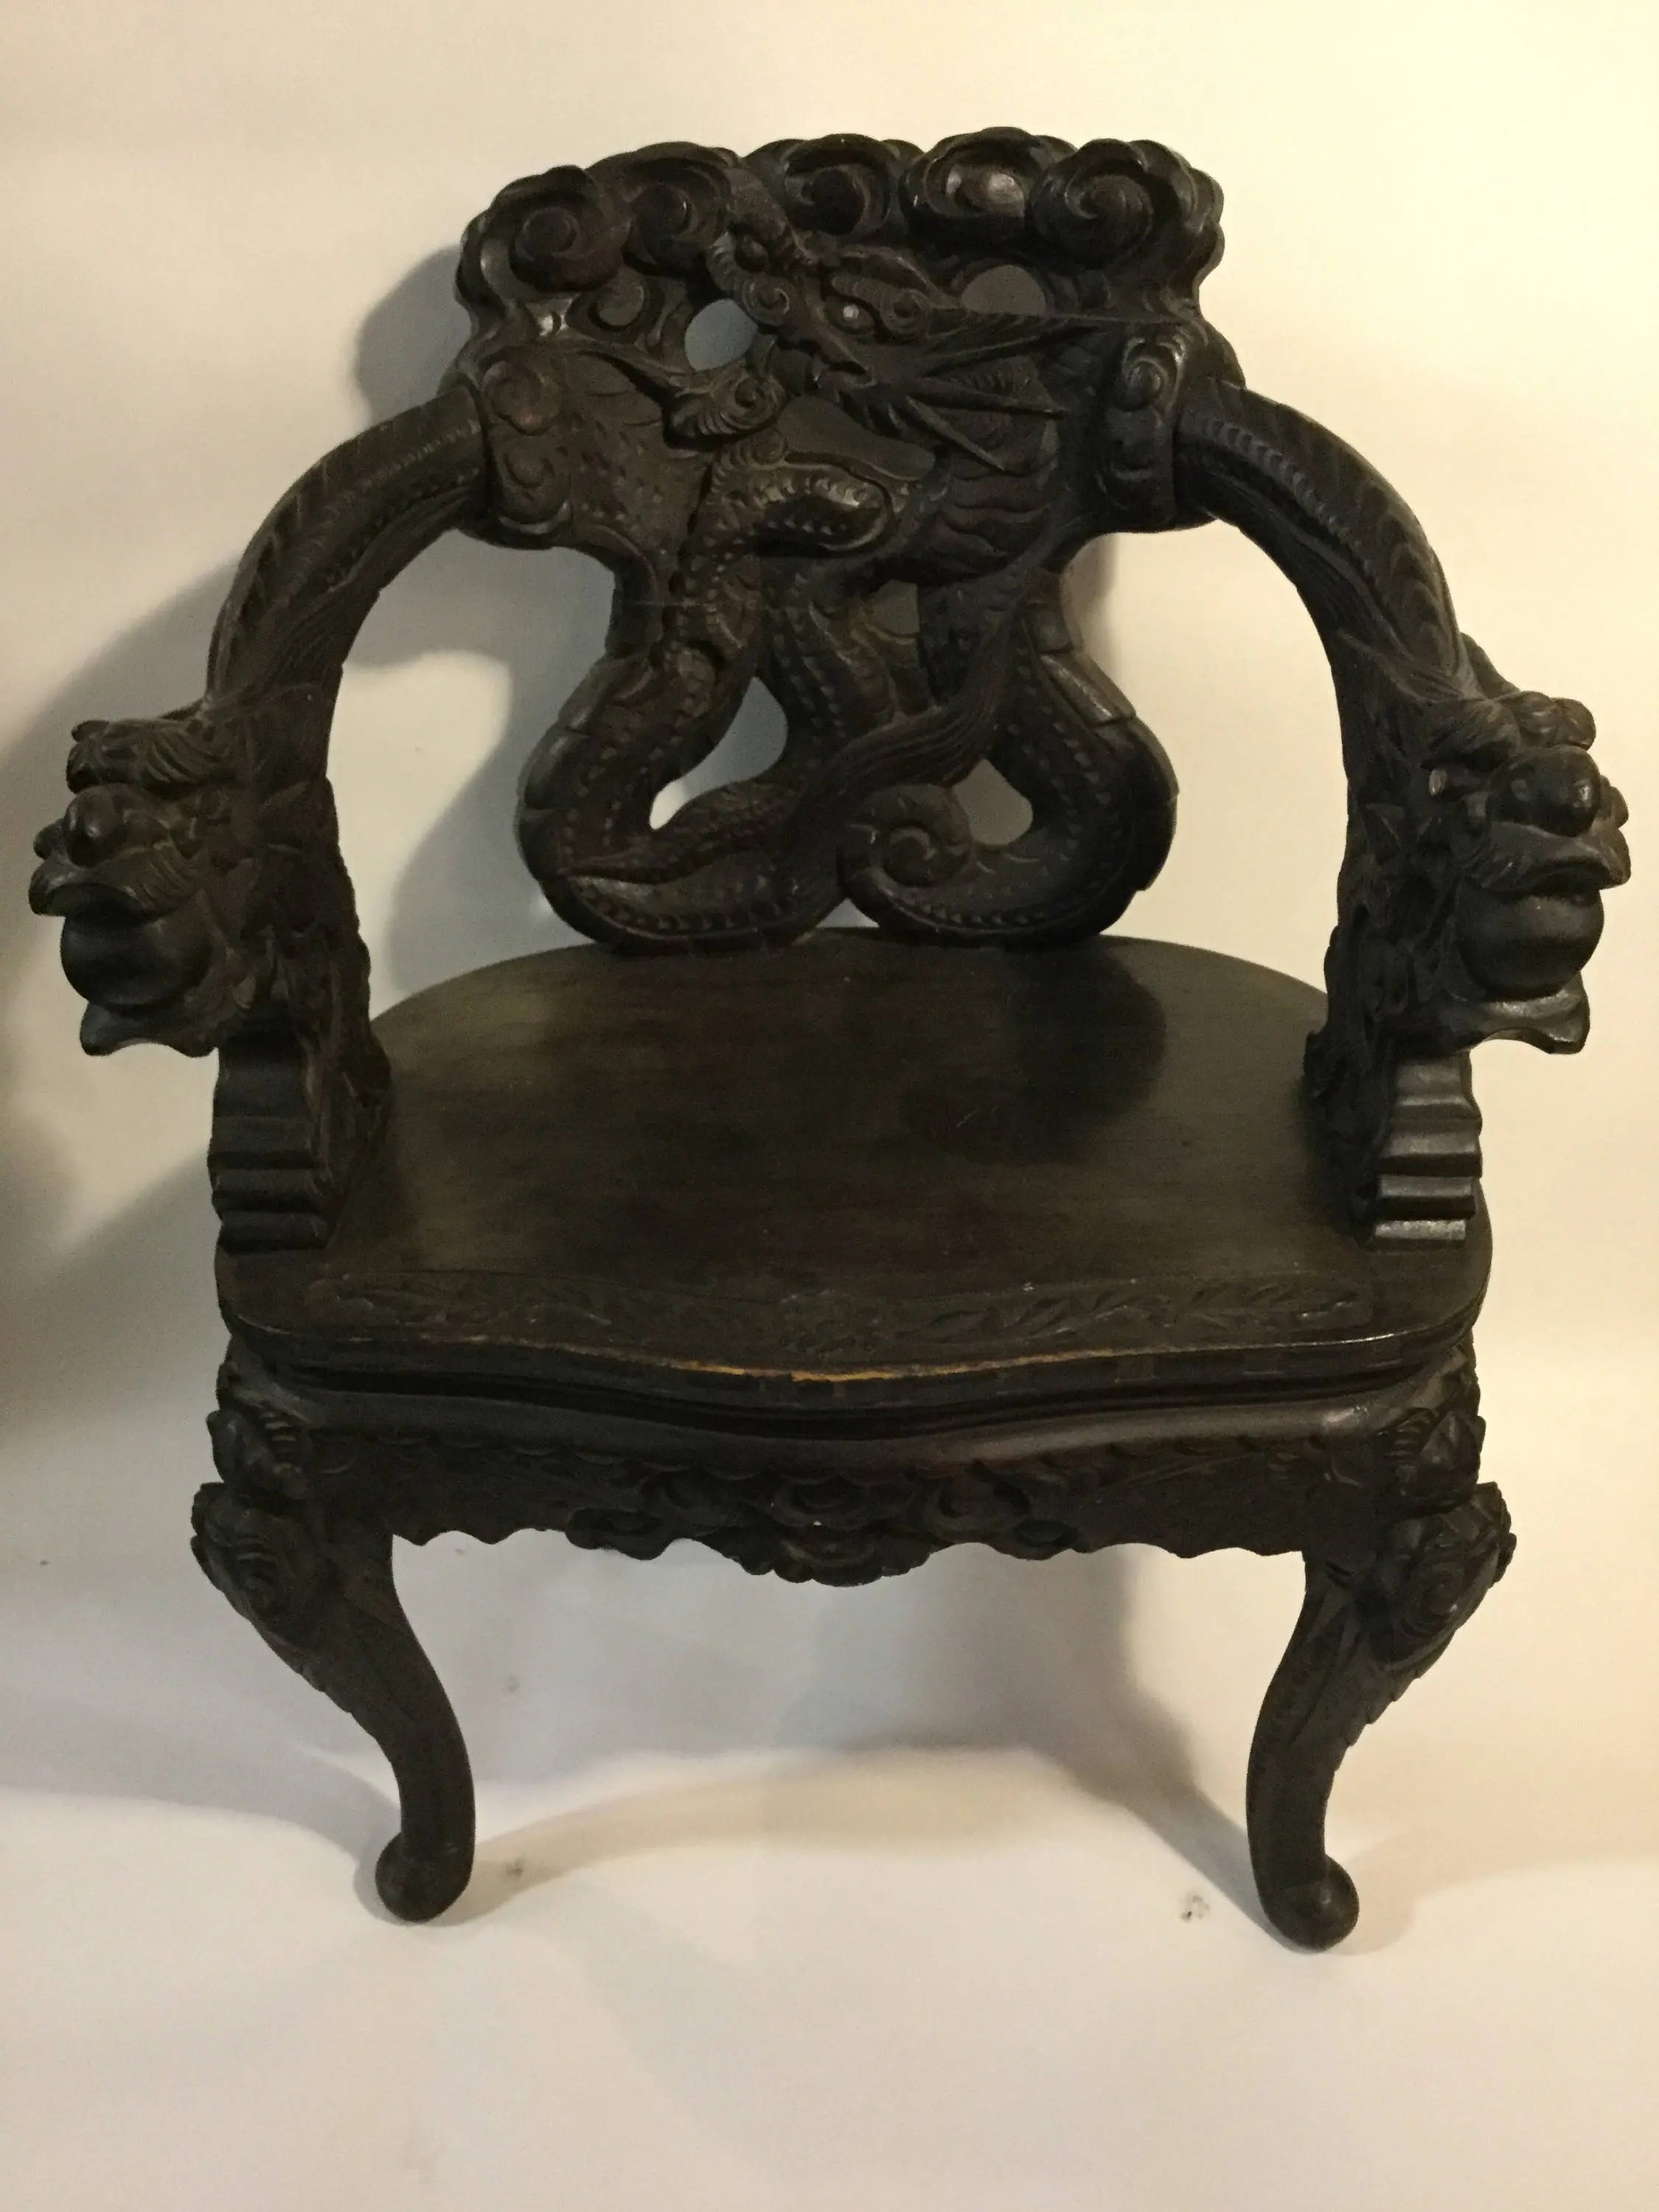 Dragon Chair Ca 1880s Chinese Carved Hangmuwood Or Blackwood Dragon Chair With